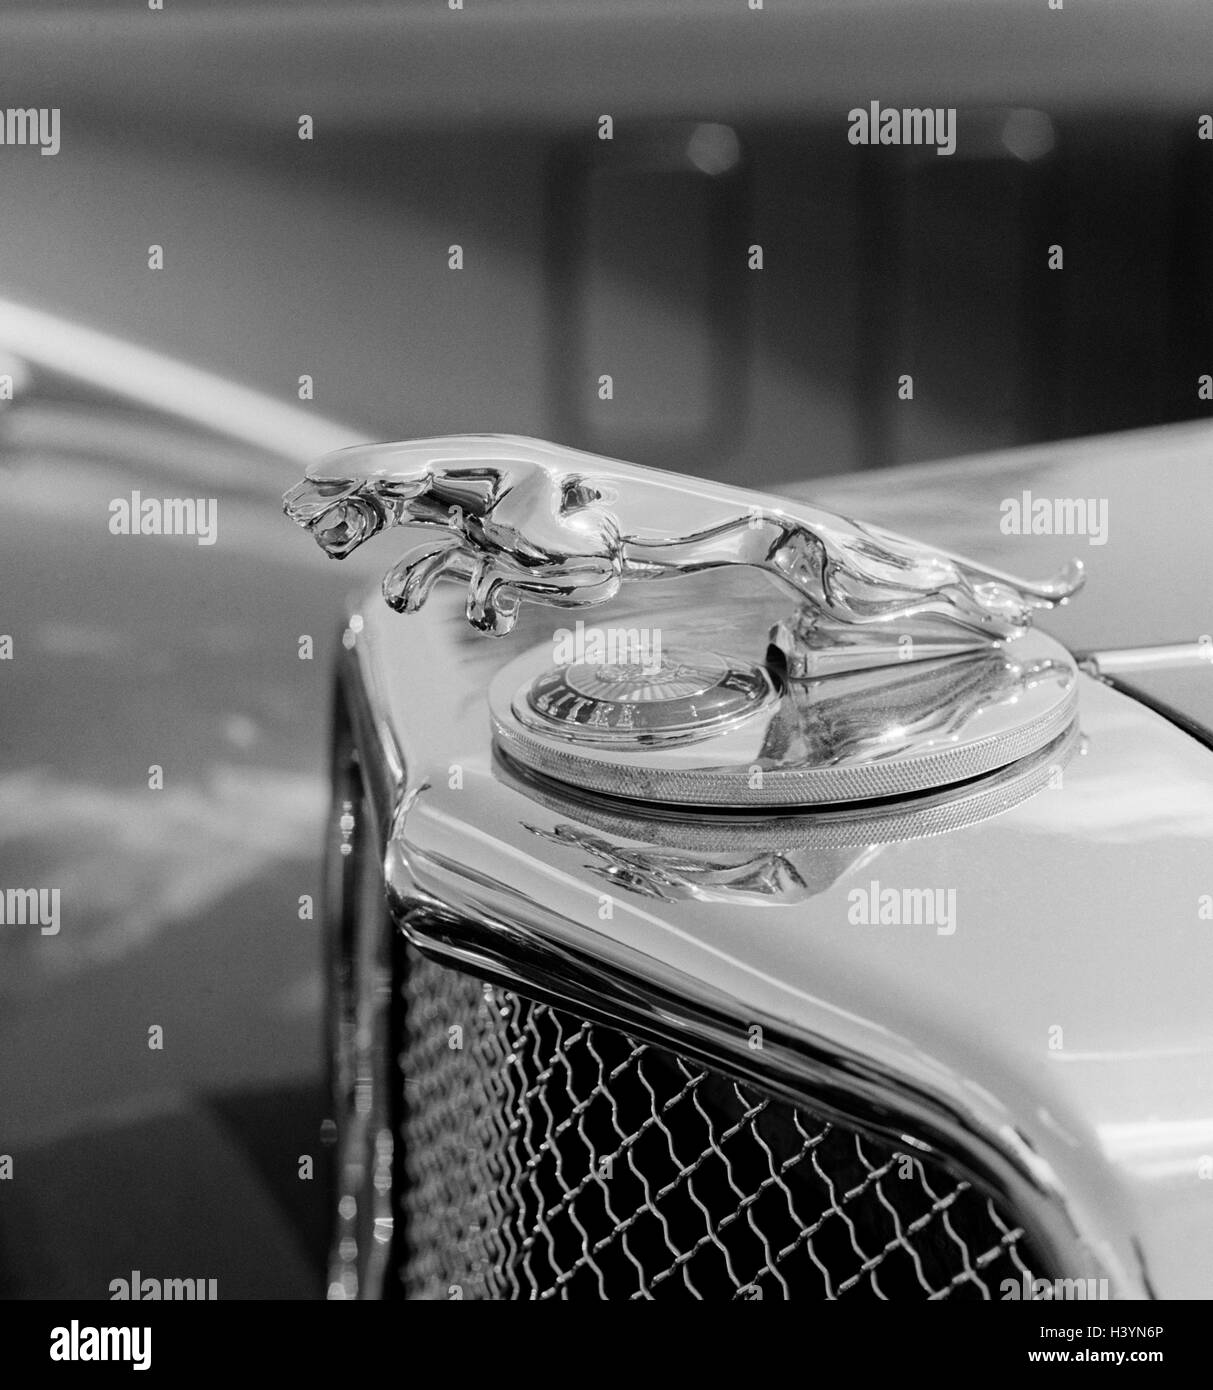 Car Old Timer Jaguar Detail Hood Ornament B W Only Editorially